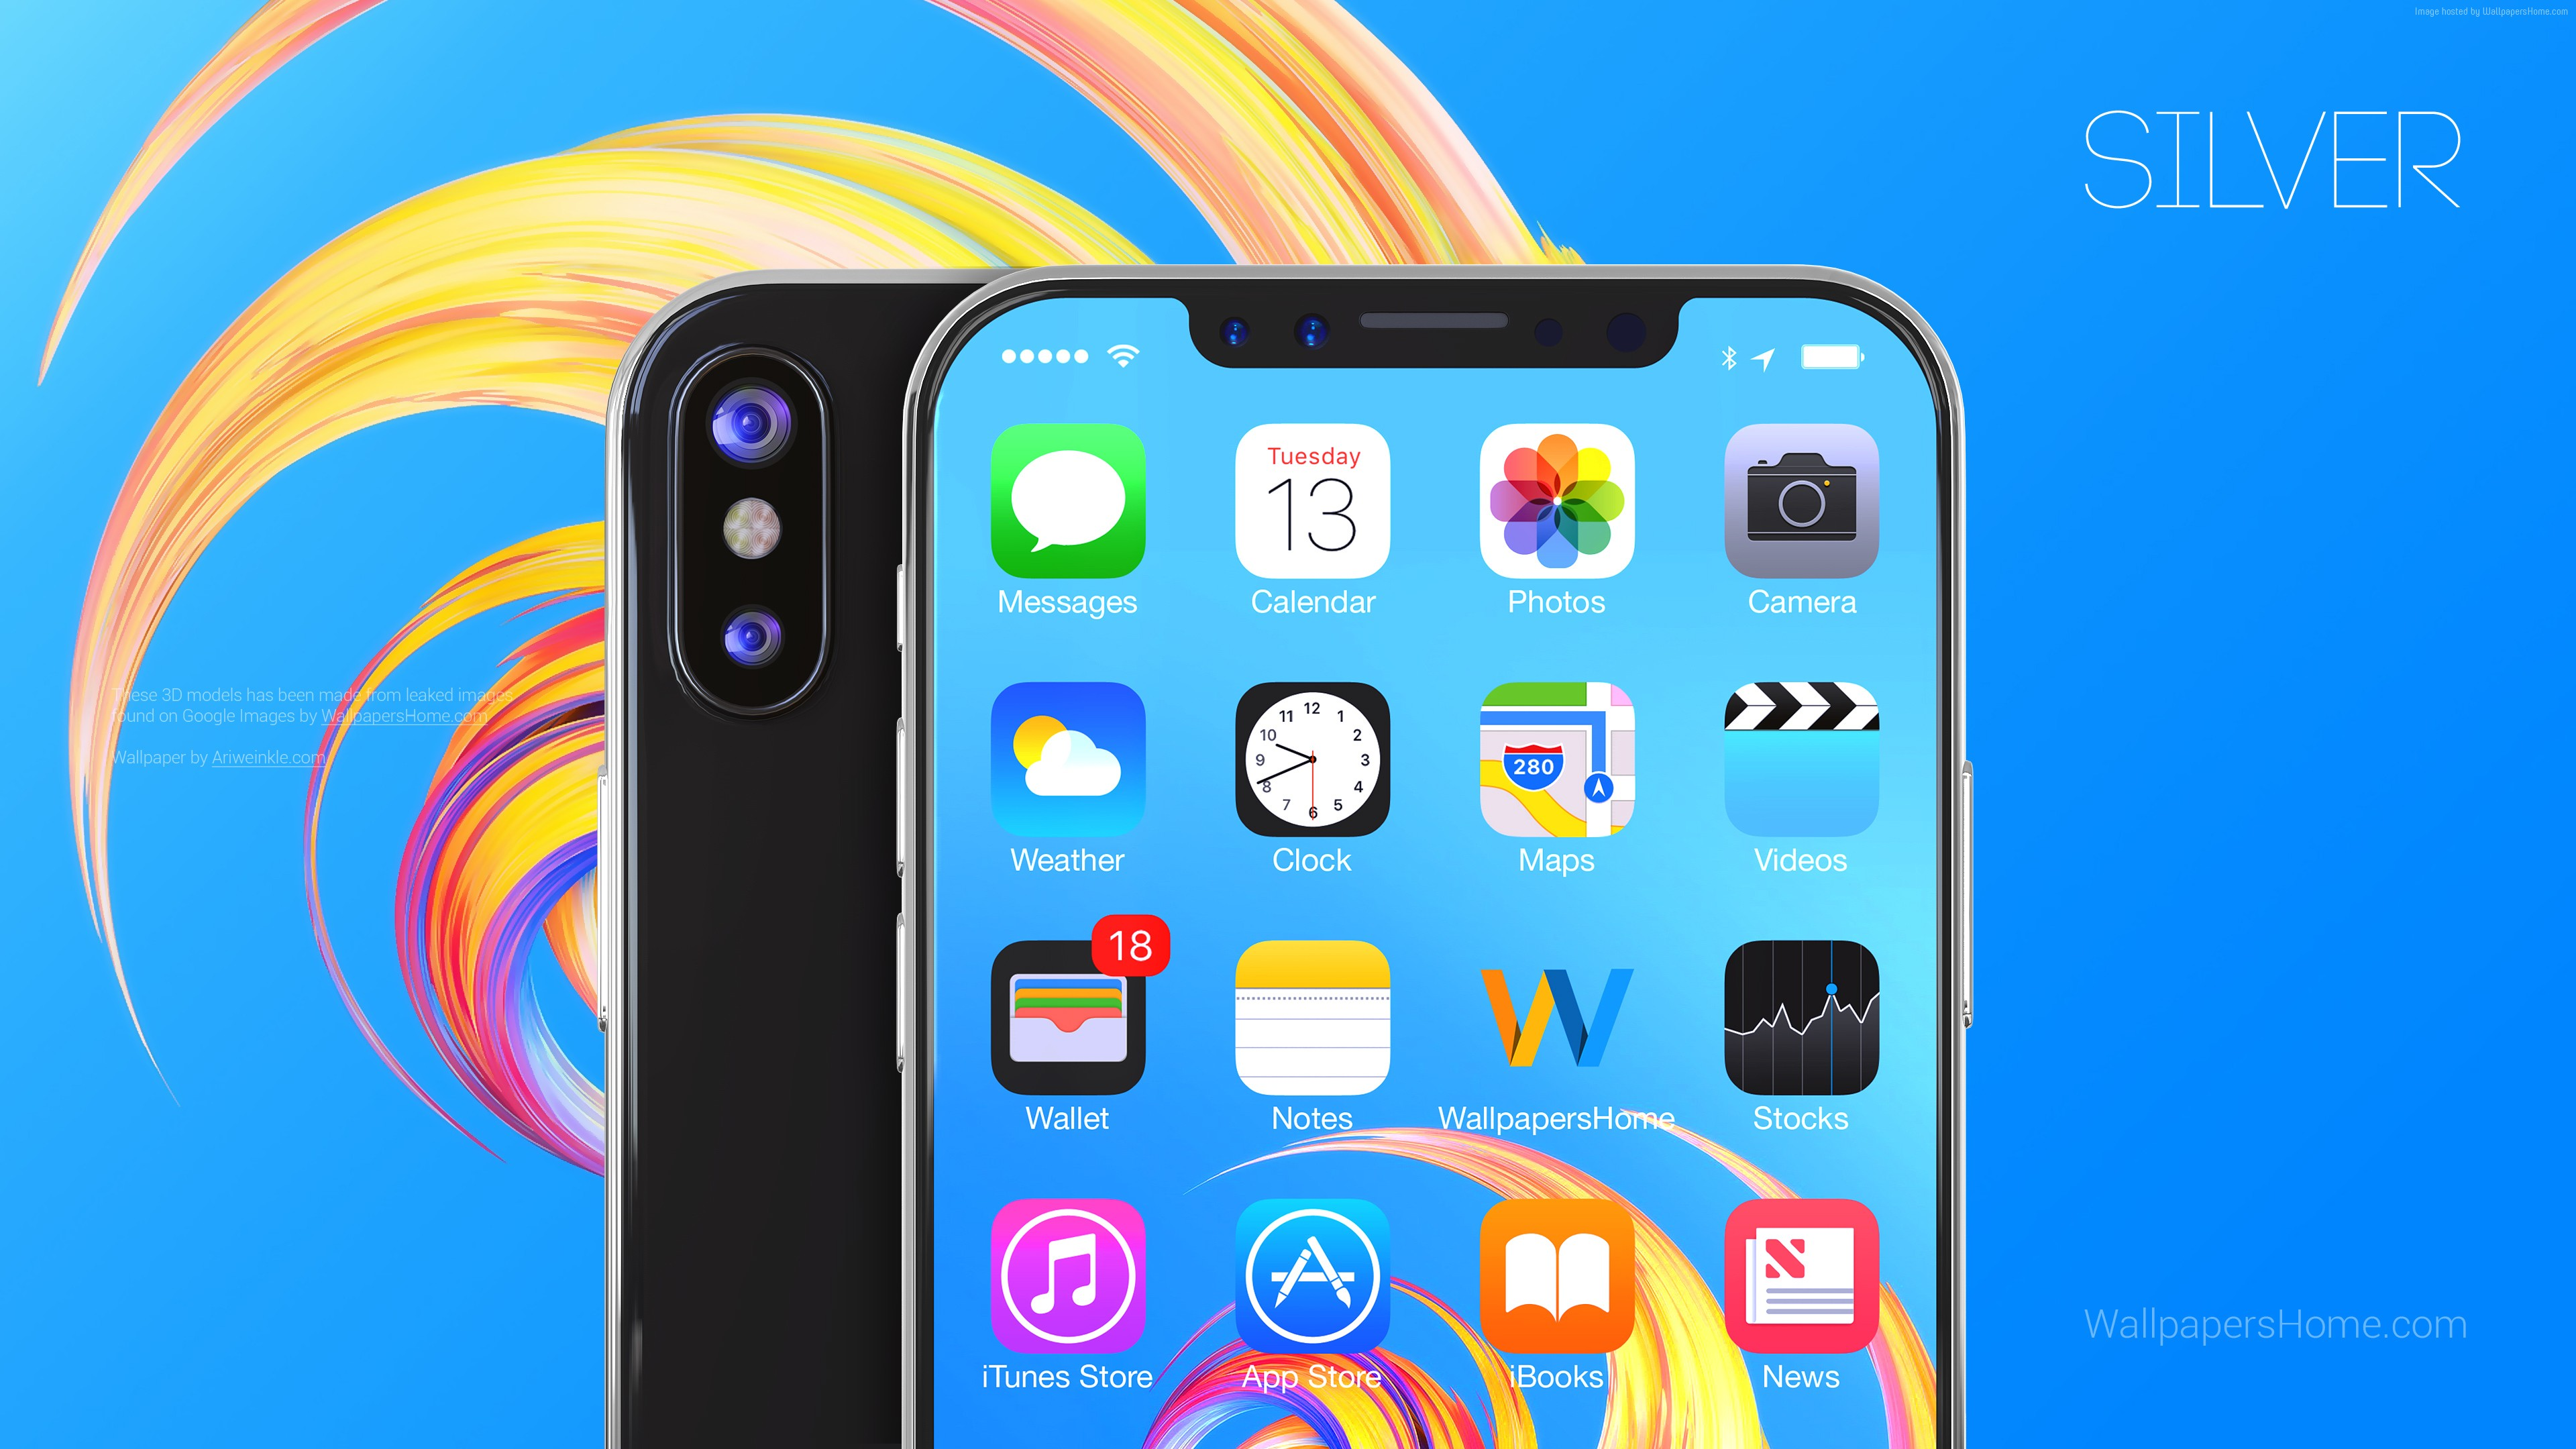 Wallpaper IPhone X Silver 3D Leaked WWDC 2017 4k Hi